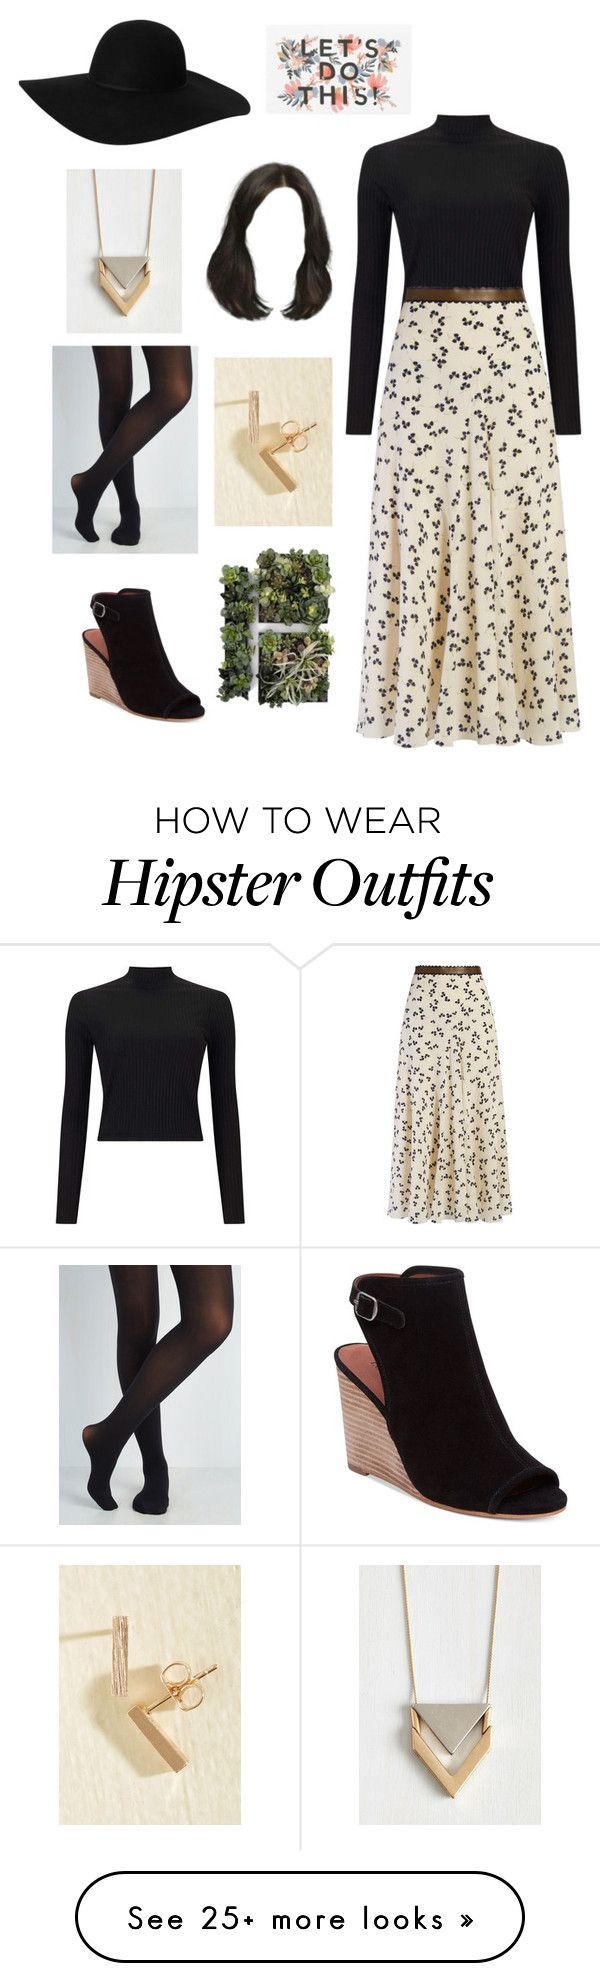 """Hipster Chic"" by peculiarleah on Polyvore featuring Miss Selfridge, Roksanda, Monki, Lucky Brand, blackandwhite, Modest, Modesty, jewish and Tznius"